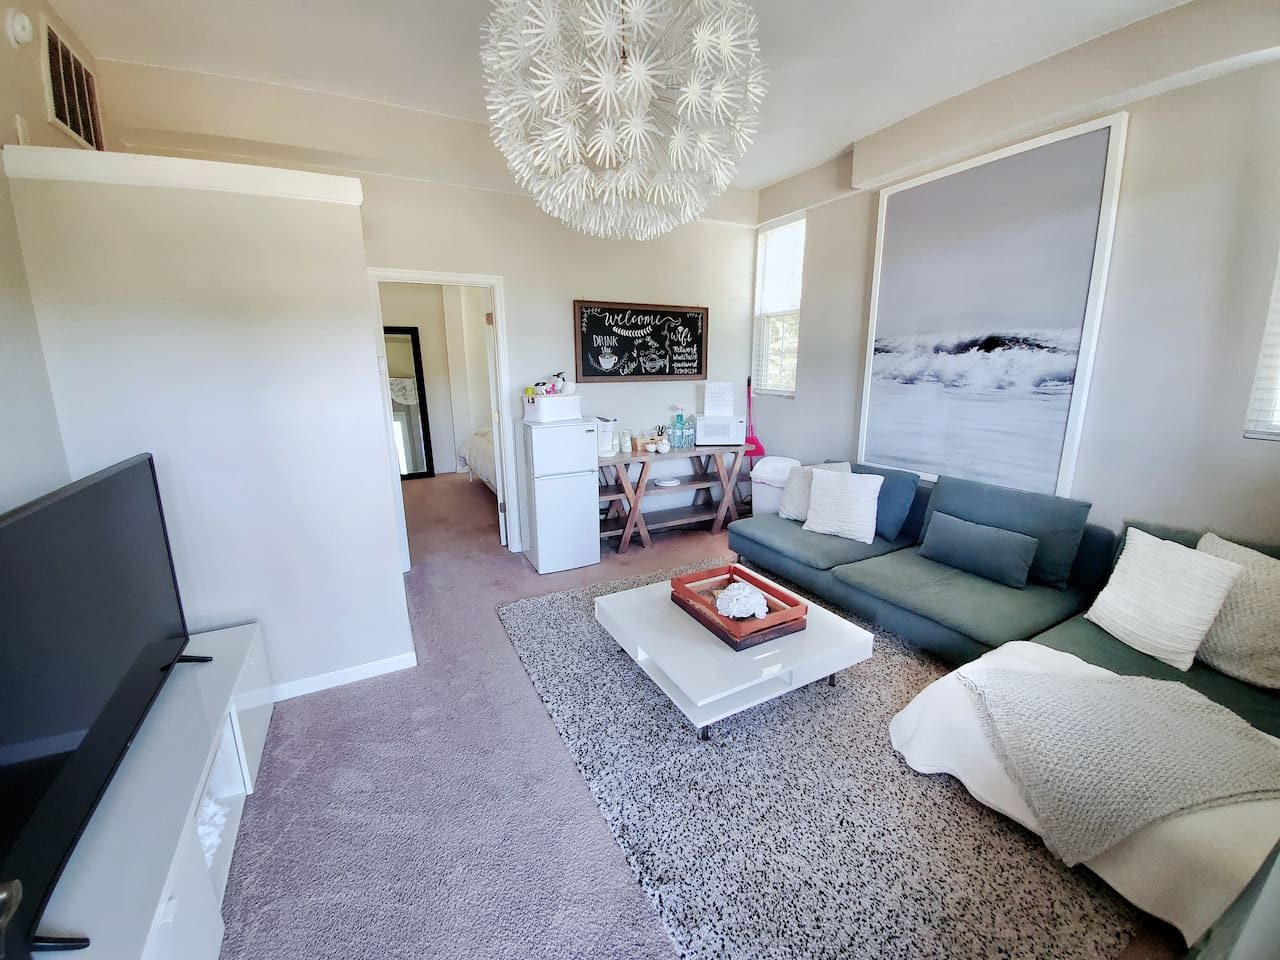 Amazing Sofa And The Most Comfortable Throw Rug You'll Ever Feel! Ultra Thick! Kitchenette in back corner!